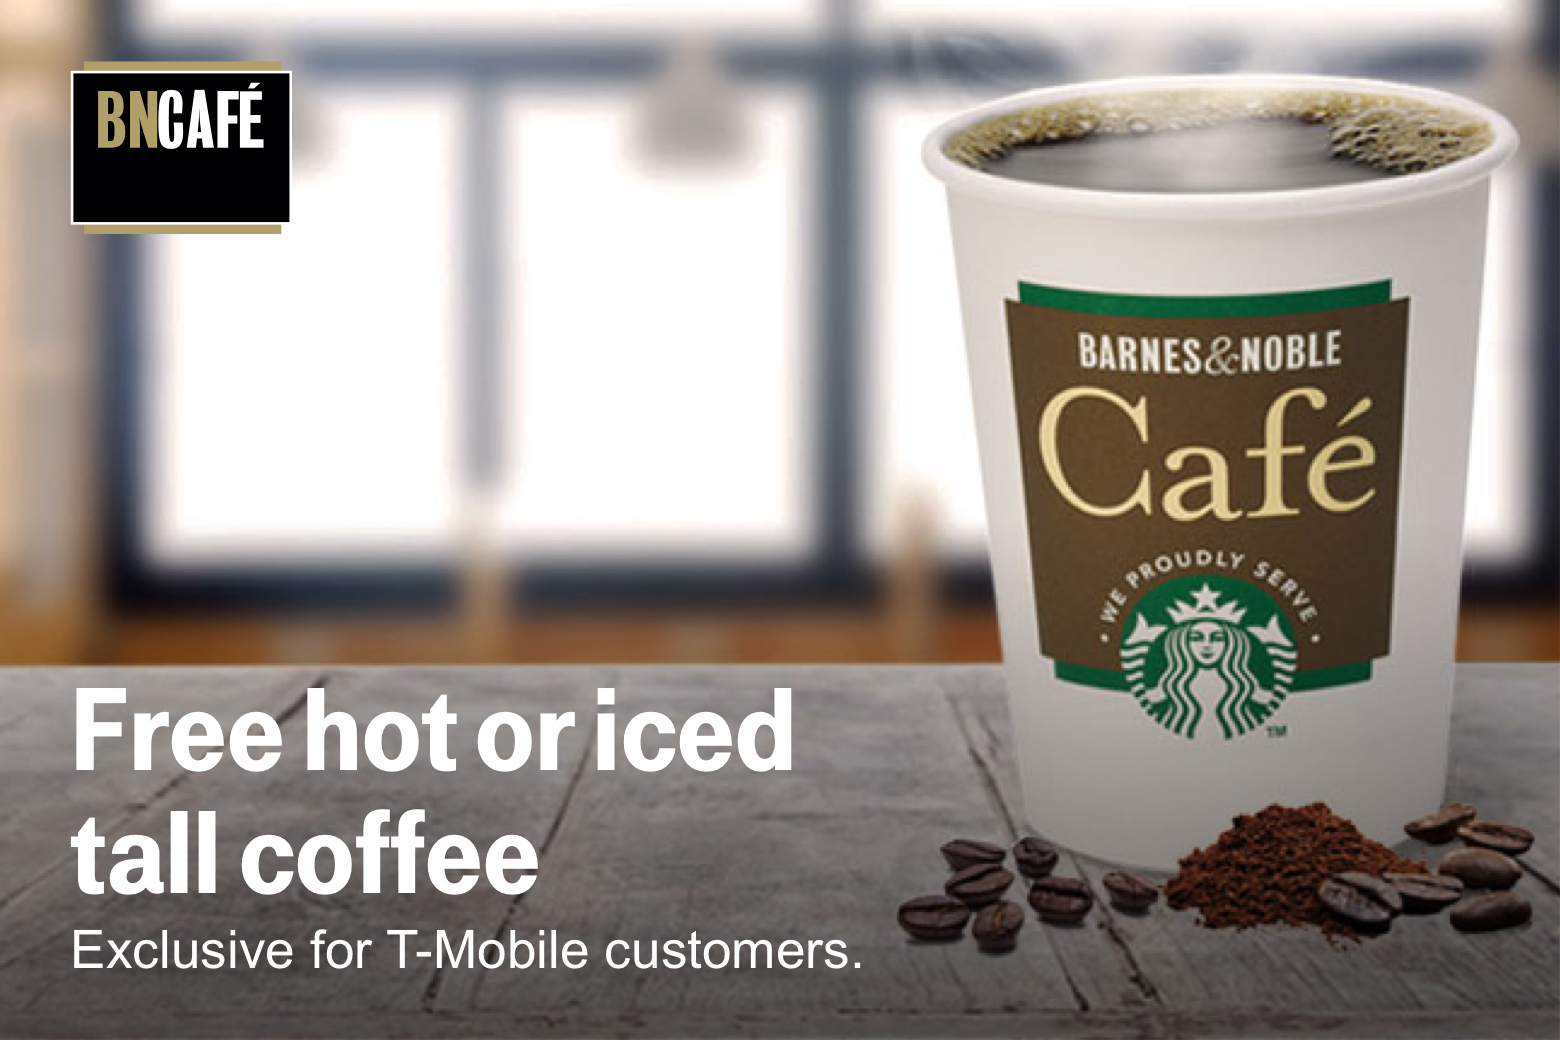 Barnes and Noble Cafe. Free hot or iced tall coffee. Exclusive for T-Mobile customers.